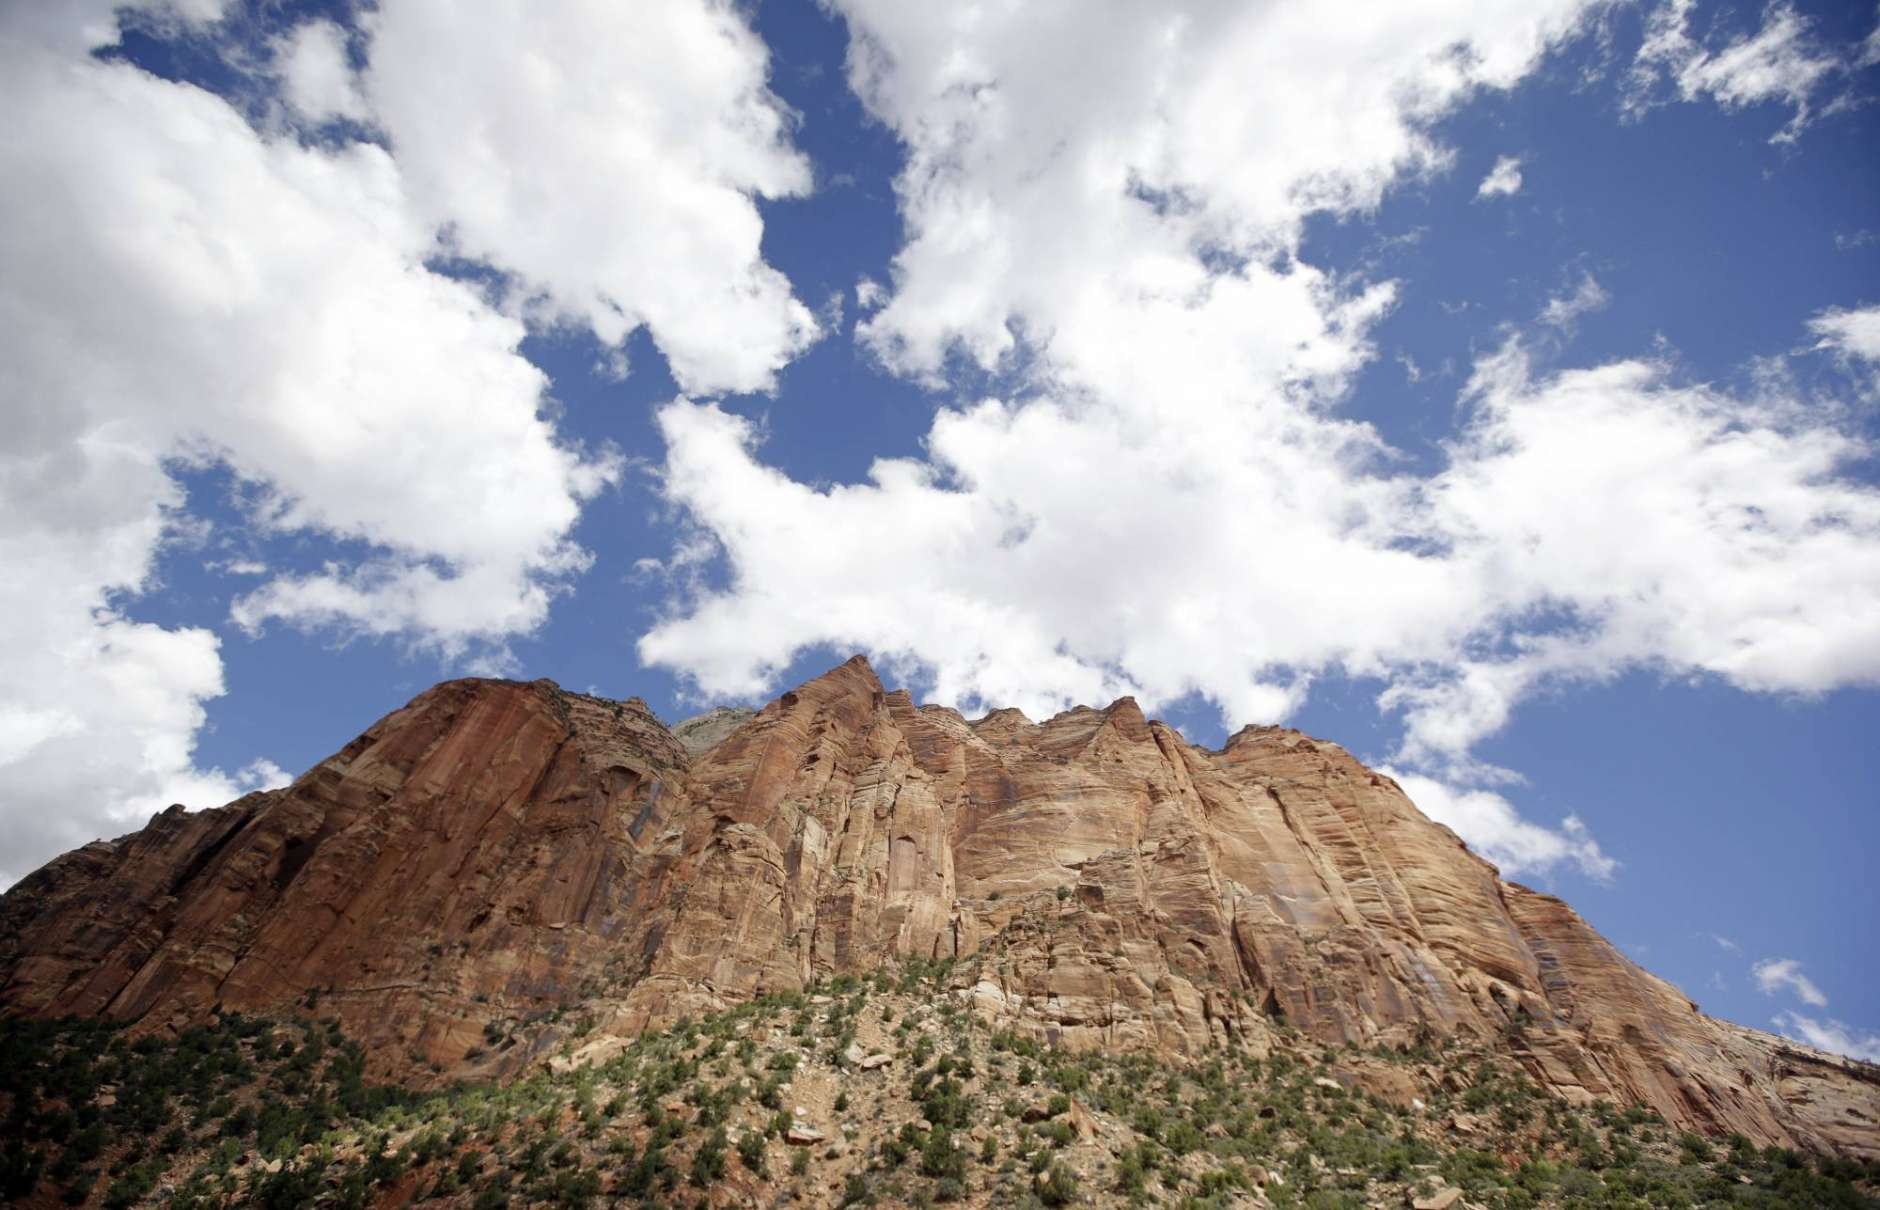 FILE - This Sept. 16, 2015, file photo shows Zion National Park, near Springdale, Utah. A group of state attorneys general on Wednesday, Nov. 22, 2017, urged the National Park Service to scrap its proposal to more than double the entrance fee at 17 popular national parks. (AP Photo/Rick Bowmer, File)